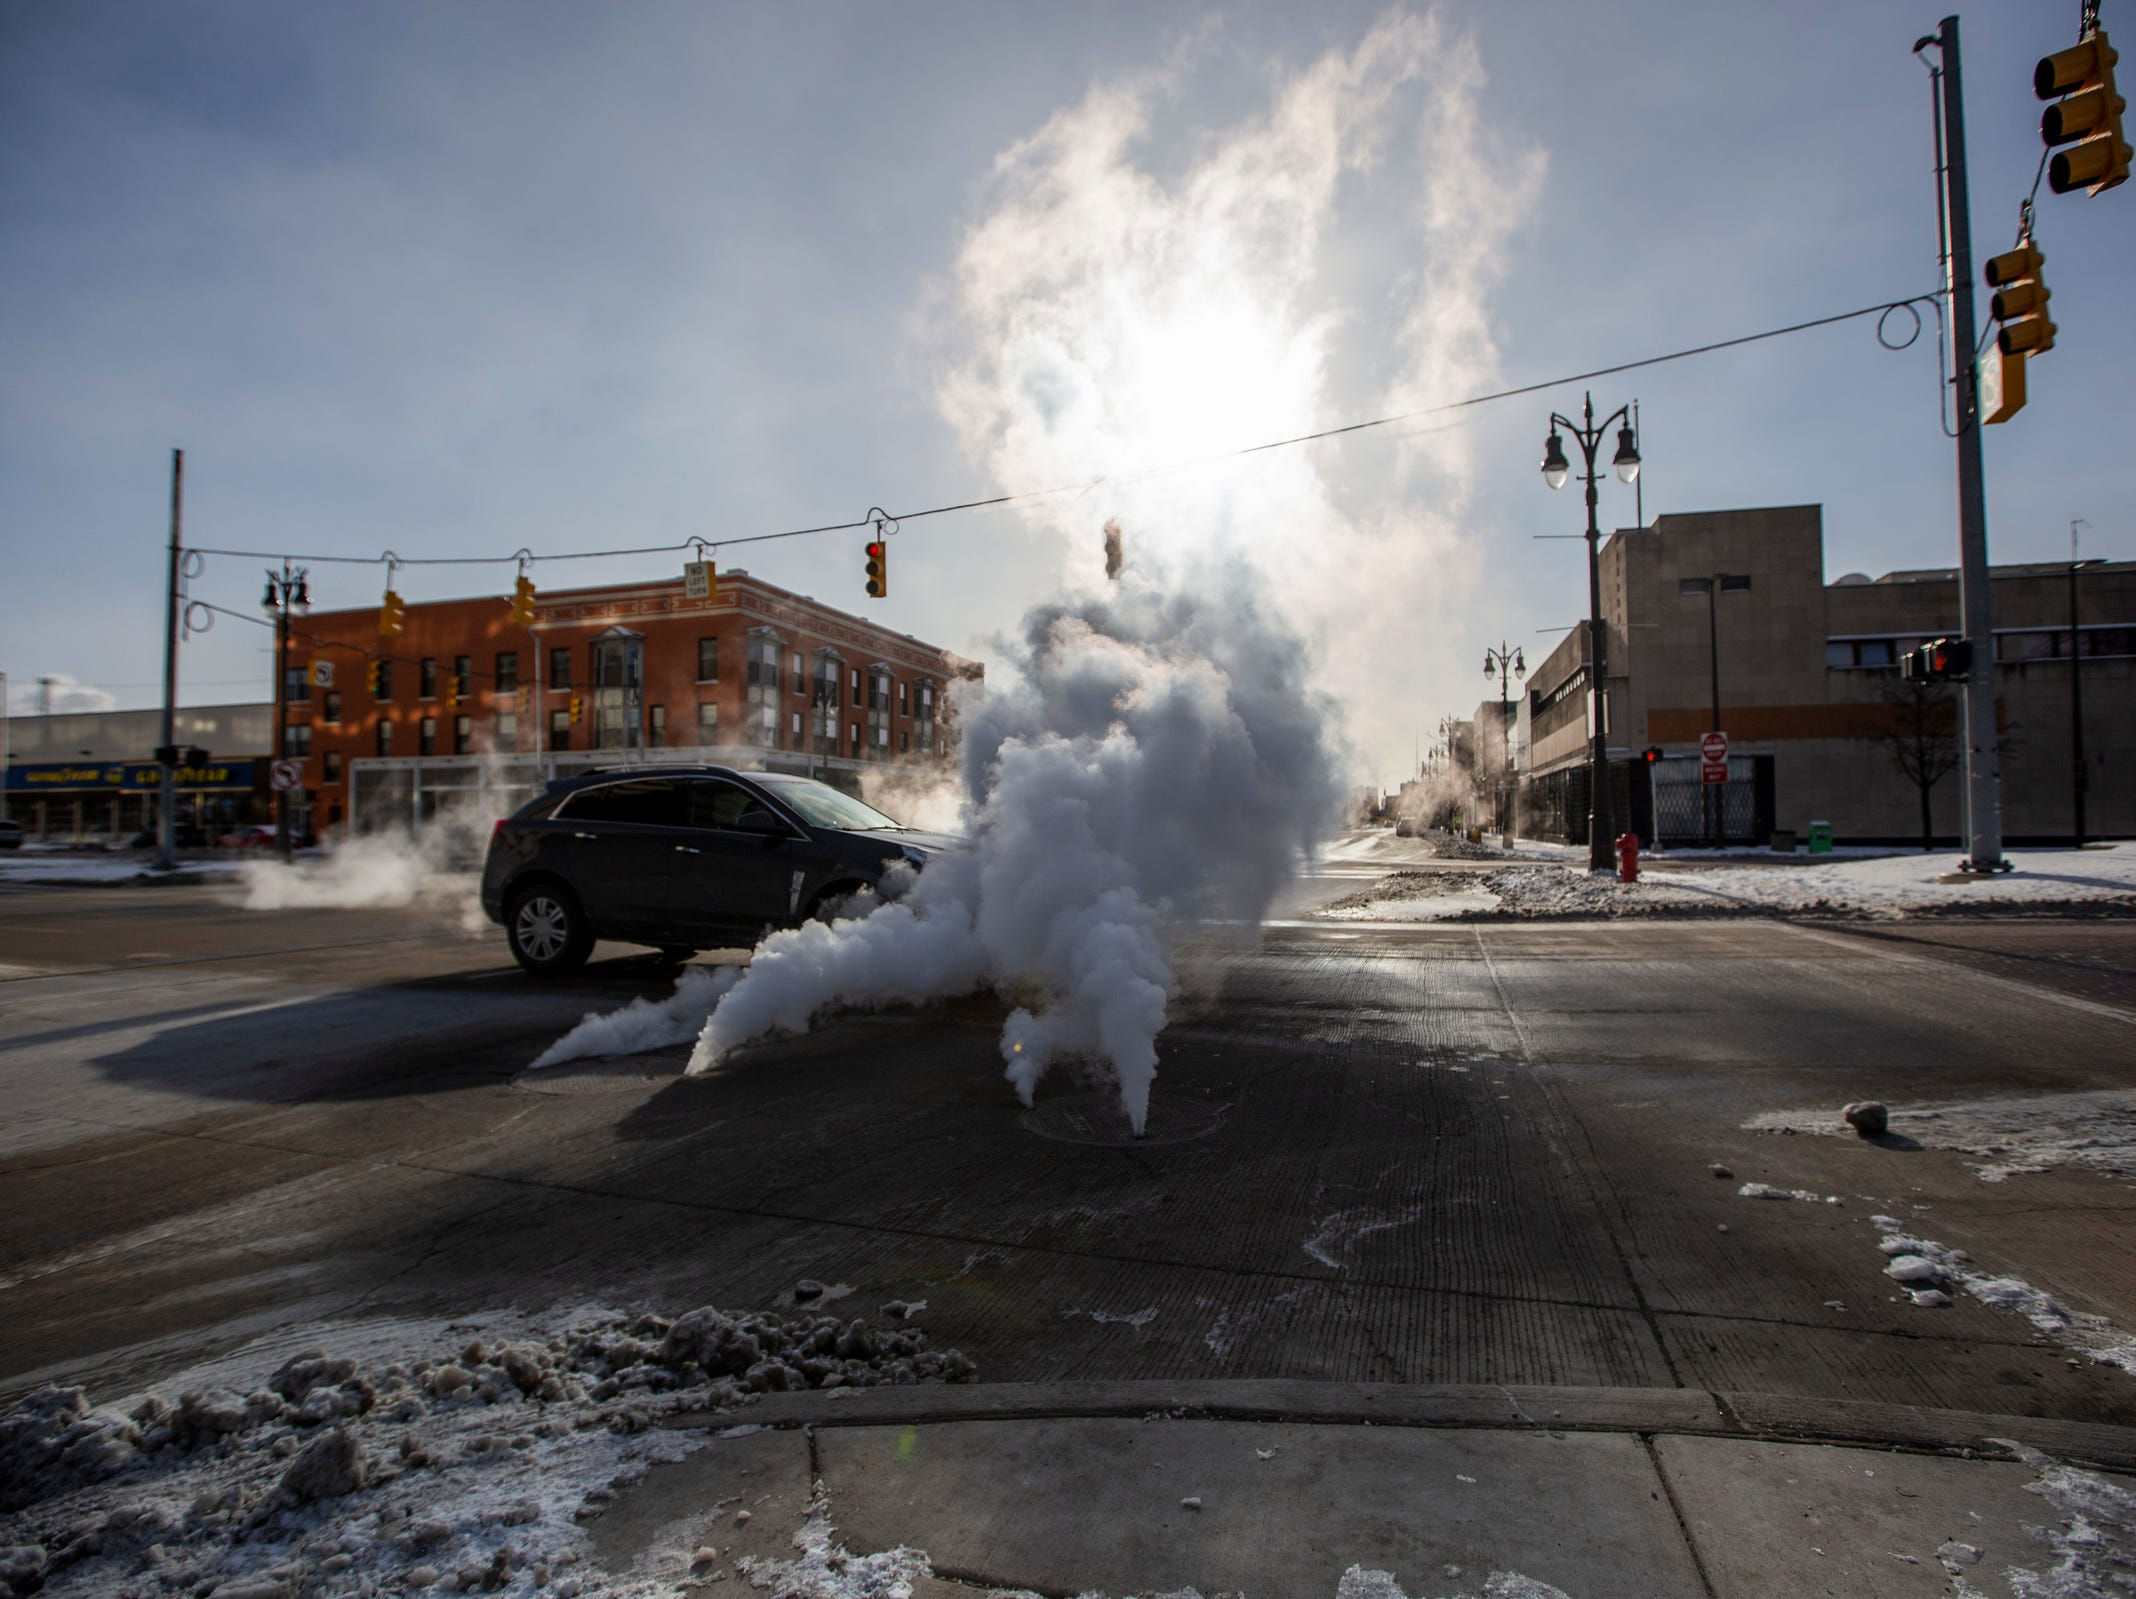 Steam bellows from a manhole cover on Woodward avenue  at West Grand boulevard in Detroit during subzero temperatures on Wednesday, Jan. 30, 2019.